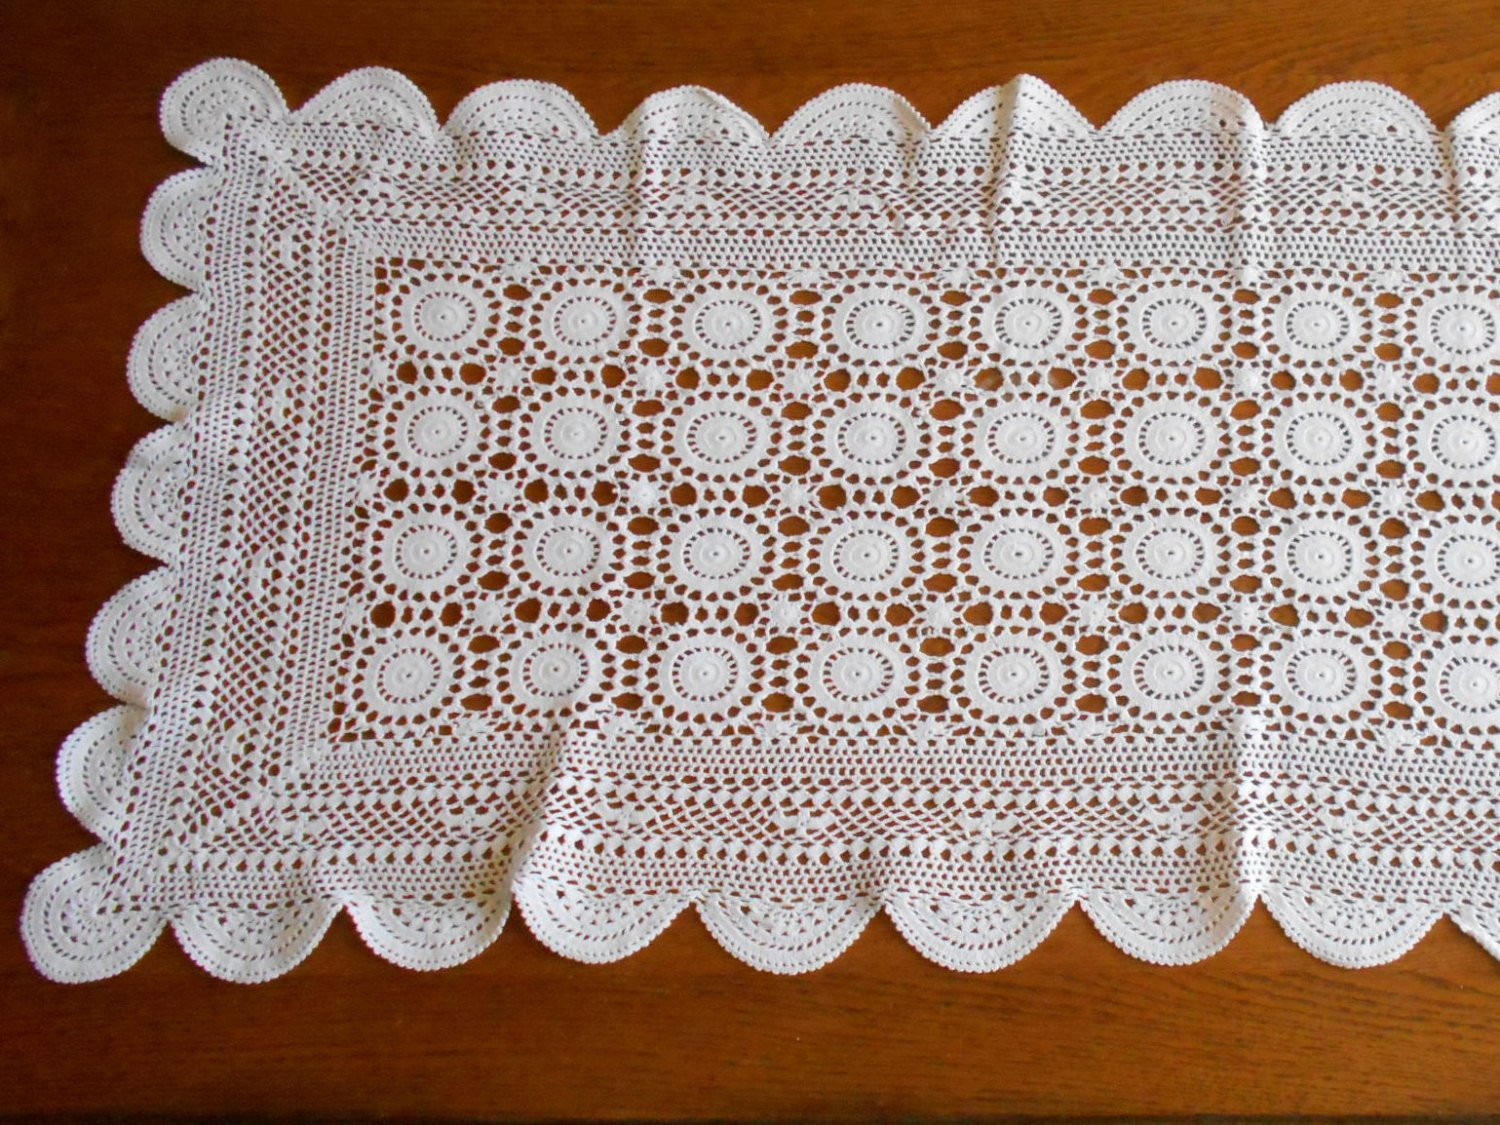 Cloth Lace Doilies Elegant French Lace Table Runner Fabric Lace Lace Doilies Of Top 48 Pics Cloth Lace Doilies